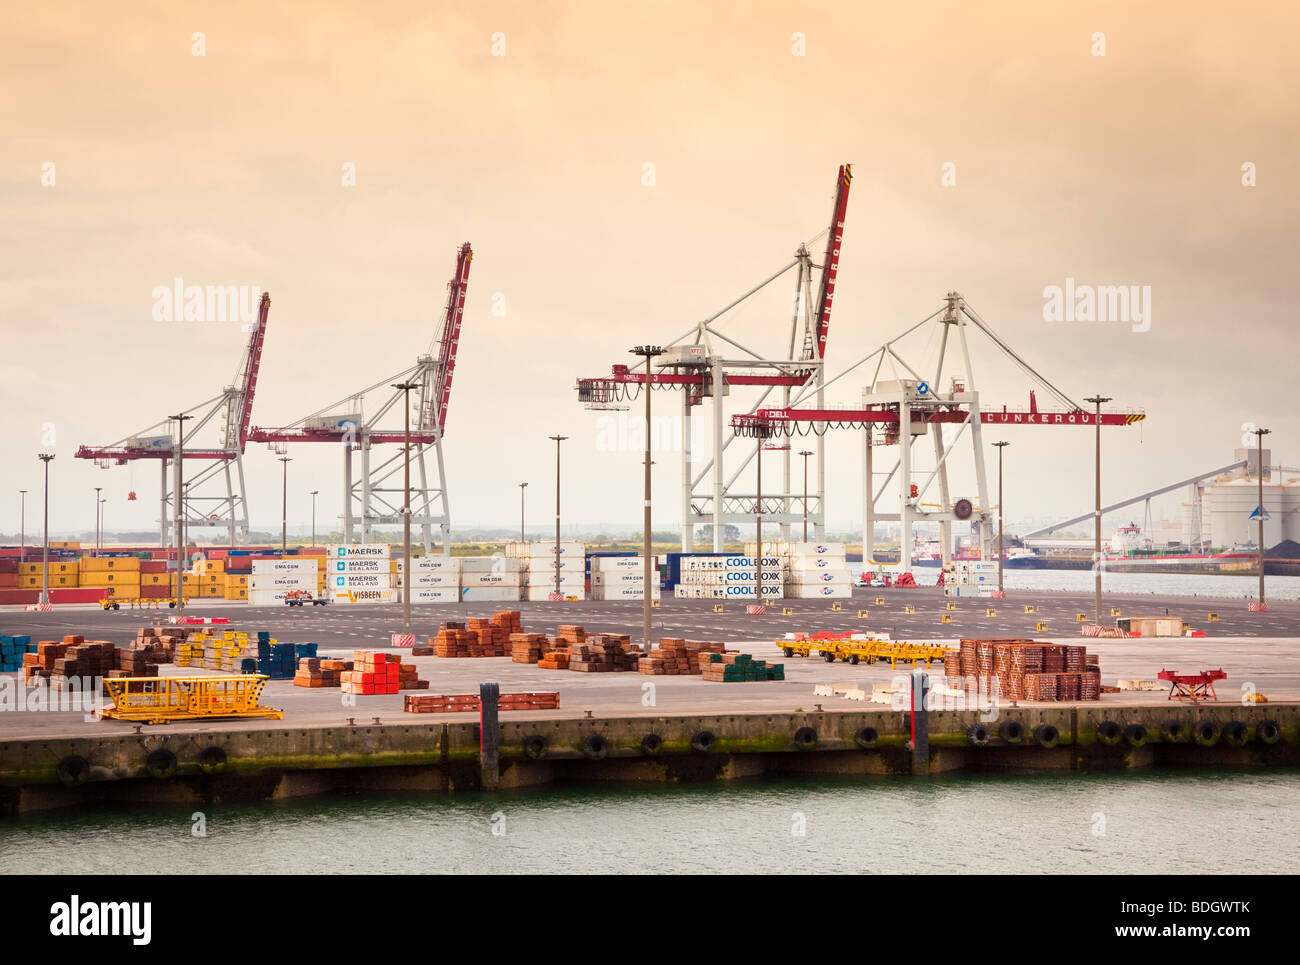 Cranes on the industrial port of Dunkirk, France, Europe - Stock Image